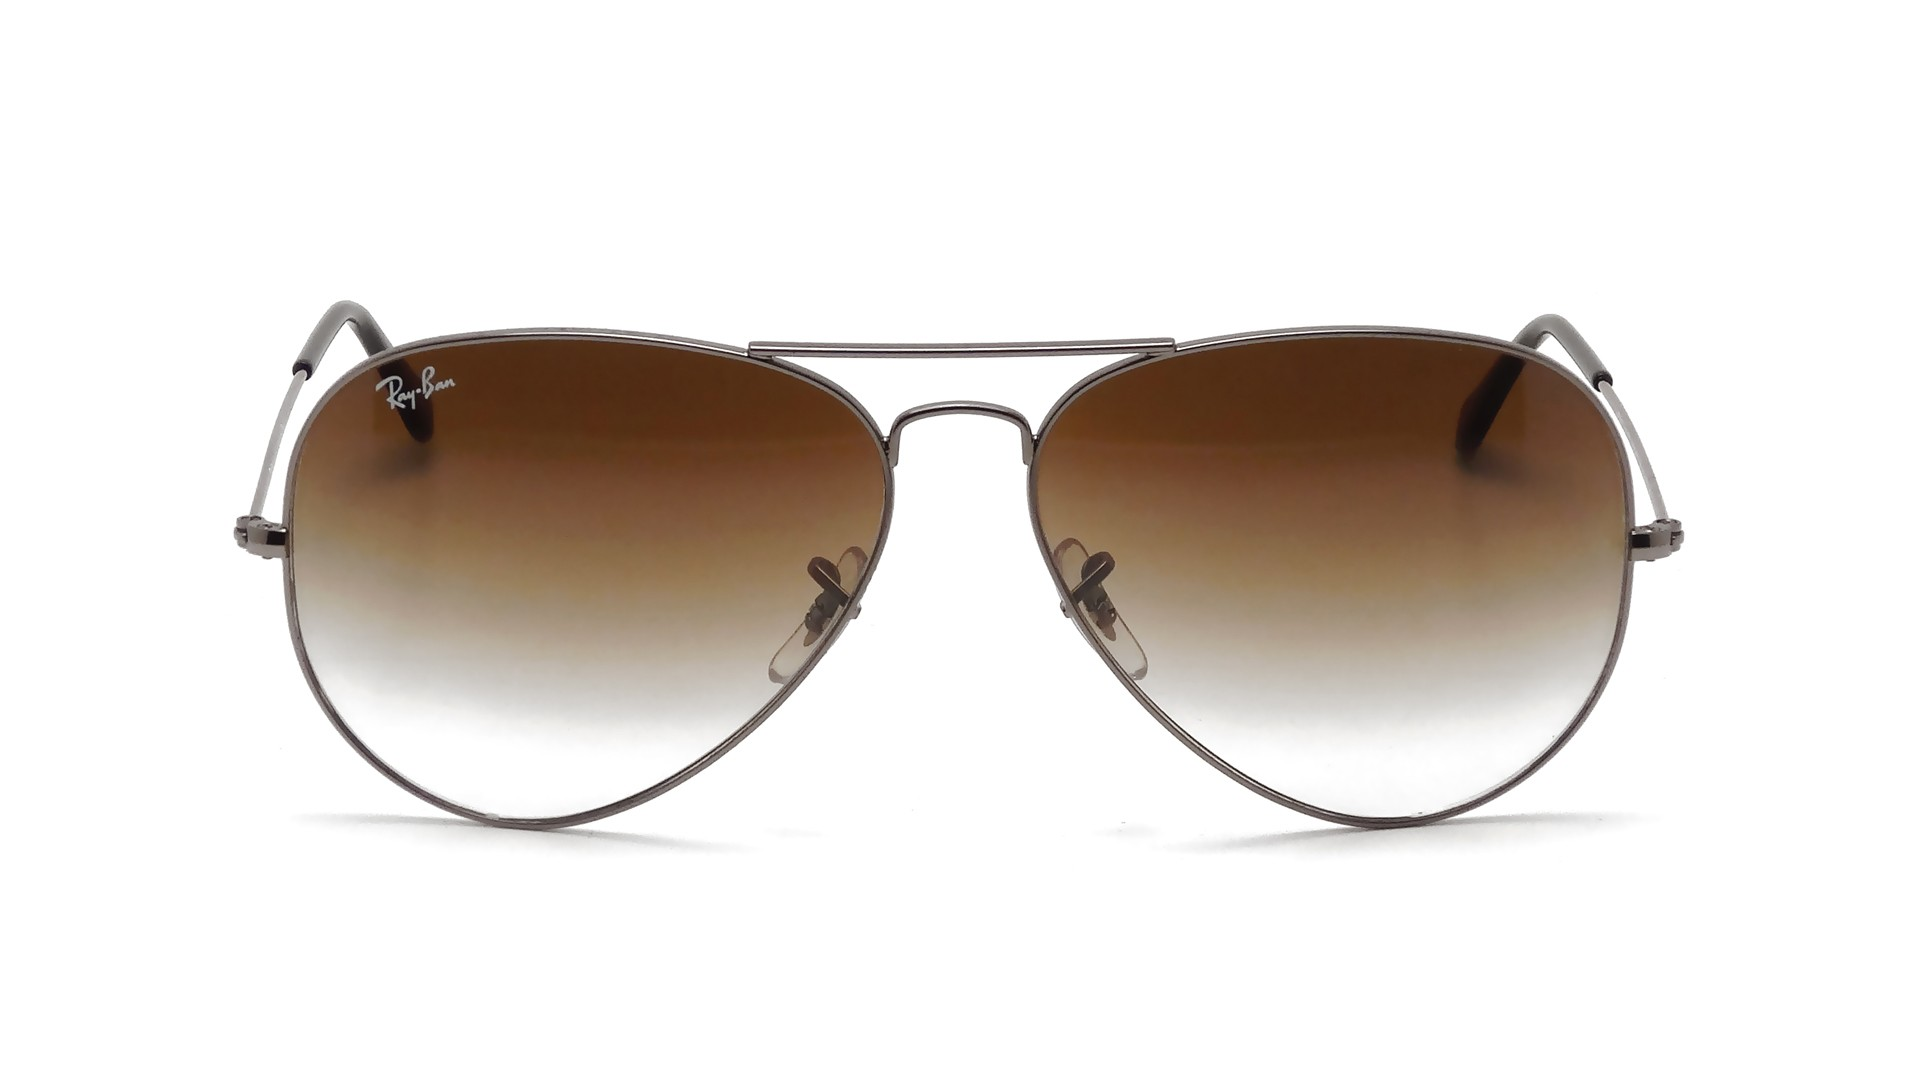 c39e748c7c5 Sunglasses Ray-Ban Aviator Large Metal Silver RB3025 004 51 55-14 Small  Gradient